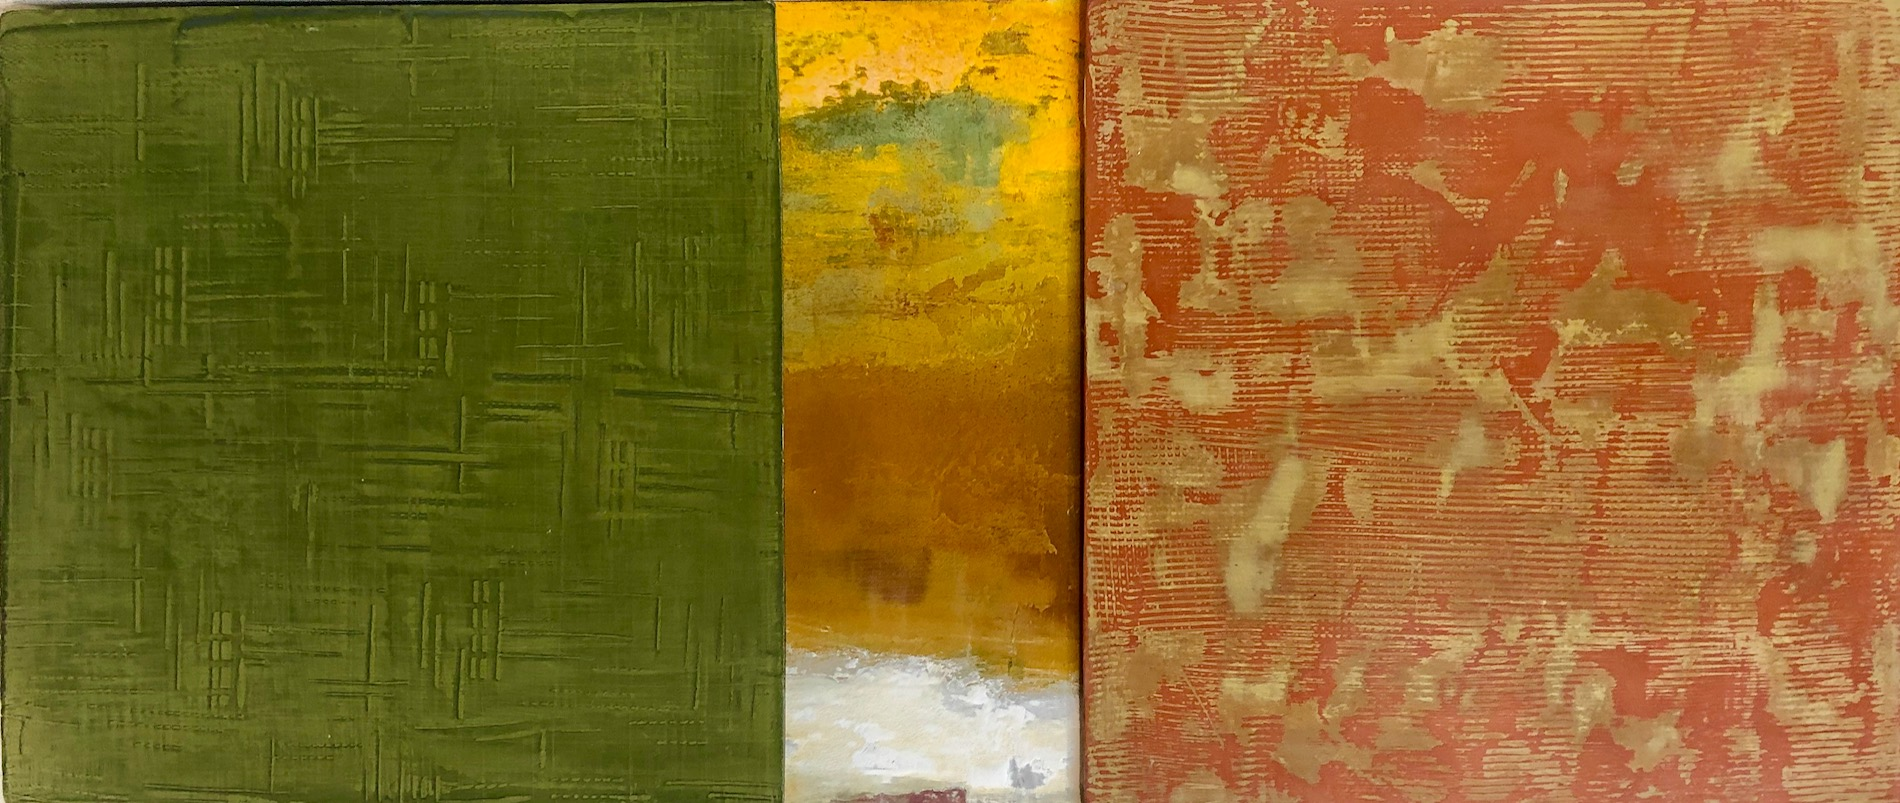 Rebecca Spivack     Triptych 4    2017  Integrated colored plaster construction  Signed, titled, and dated by the artist,  verso   12 x 28 1/4 inches